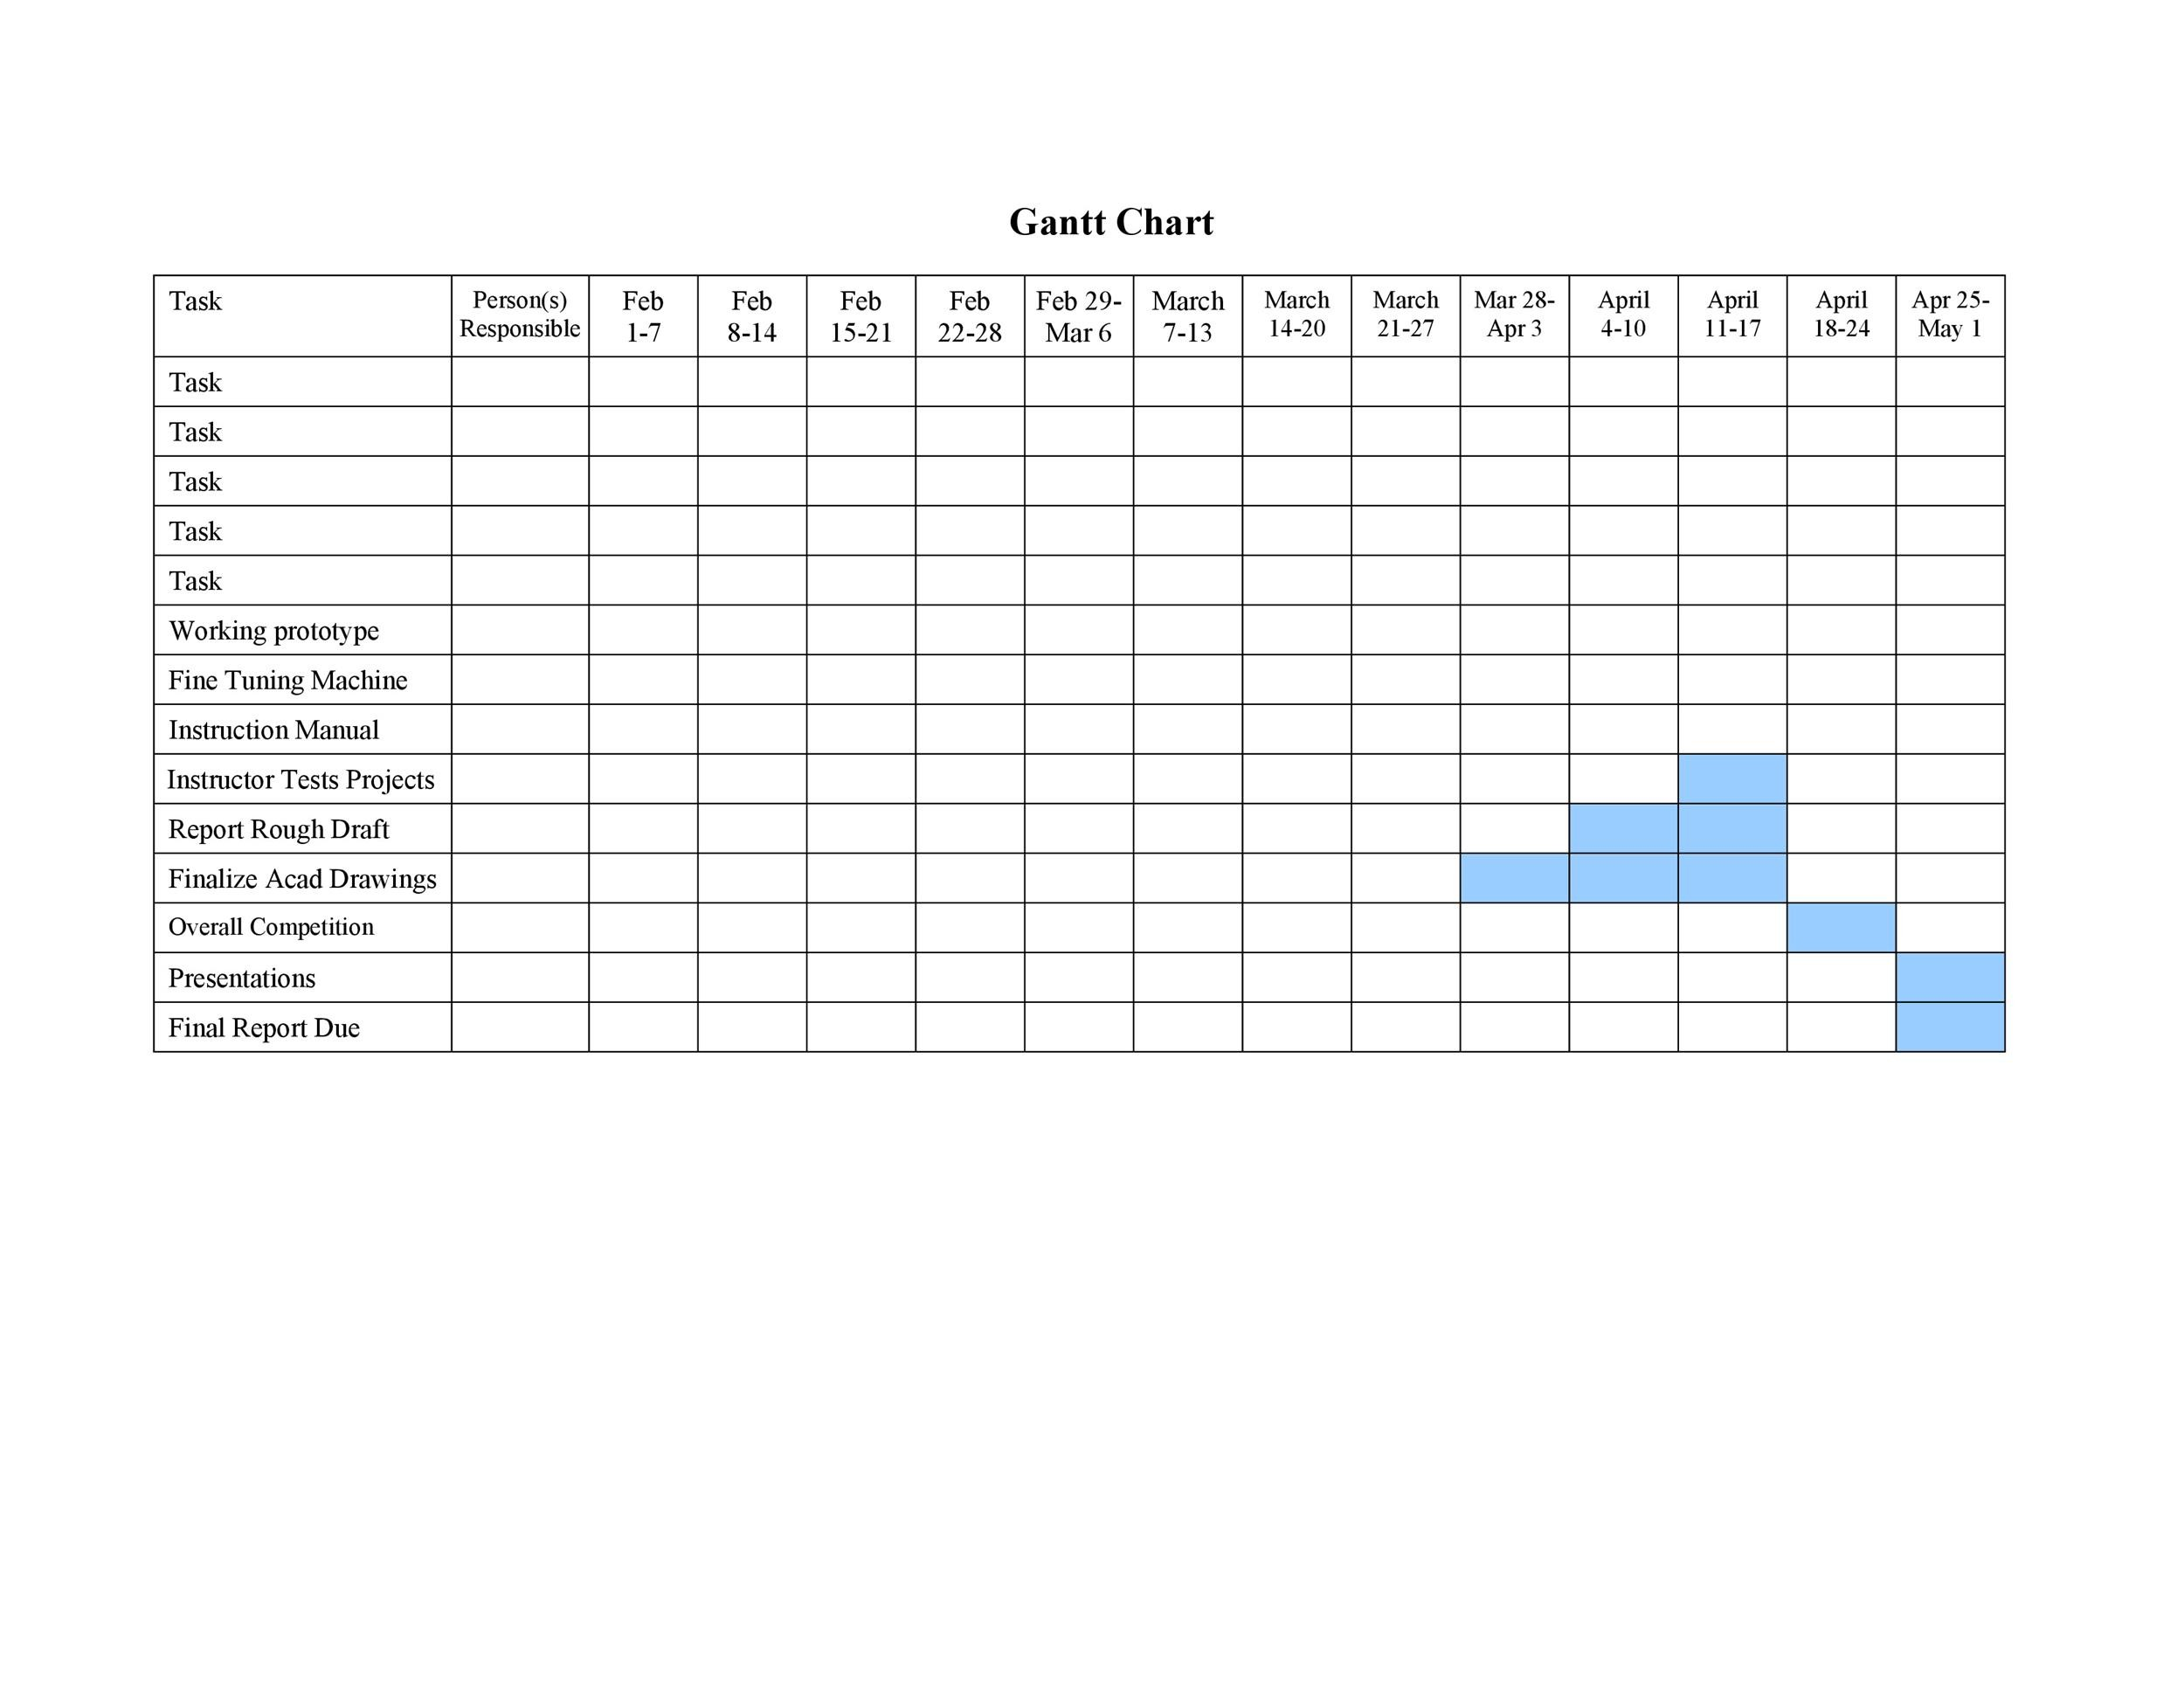 36 Free Gantt Chart Templates (Excel, PowerPoint, Word) ᐅ Template Lab